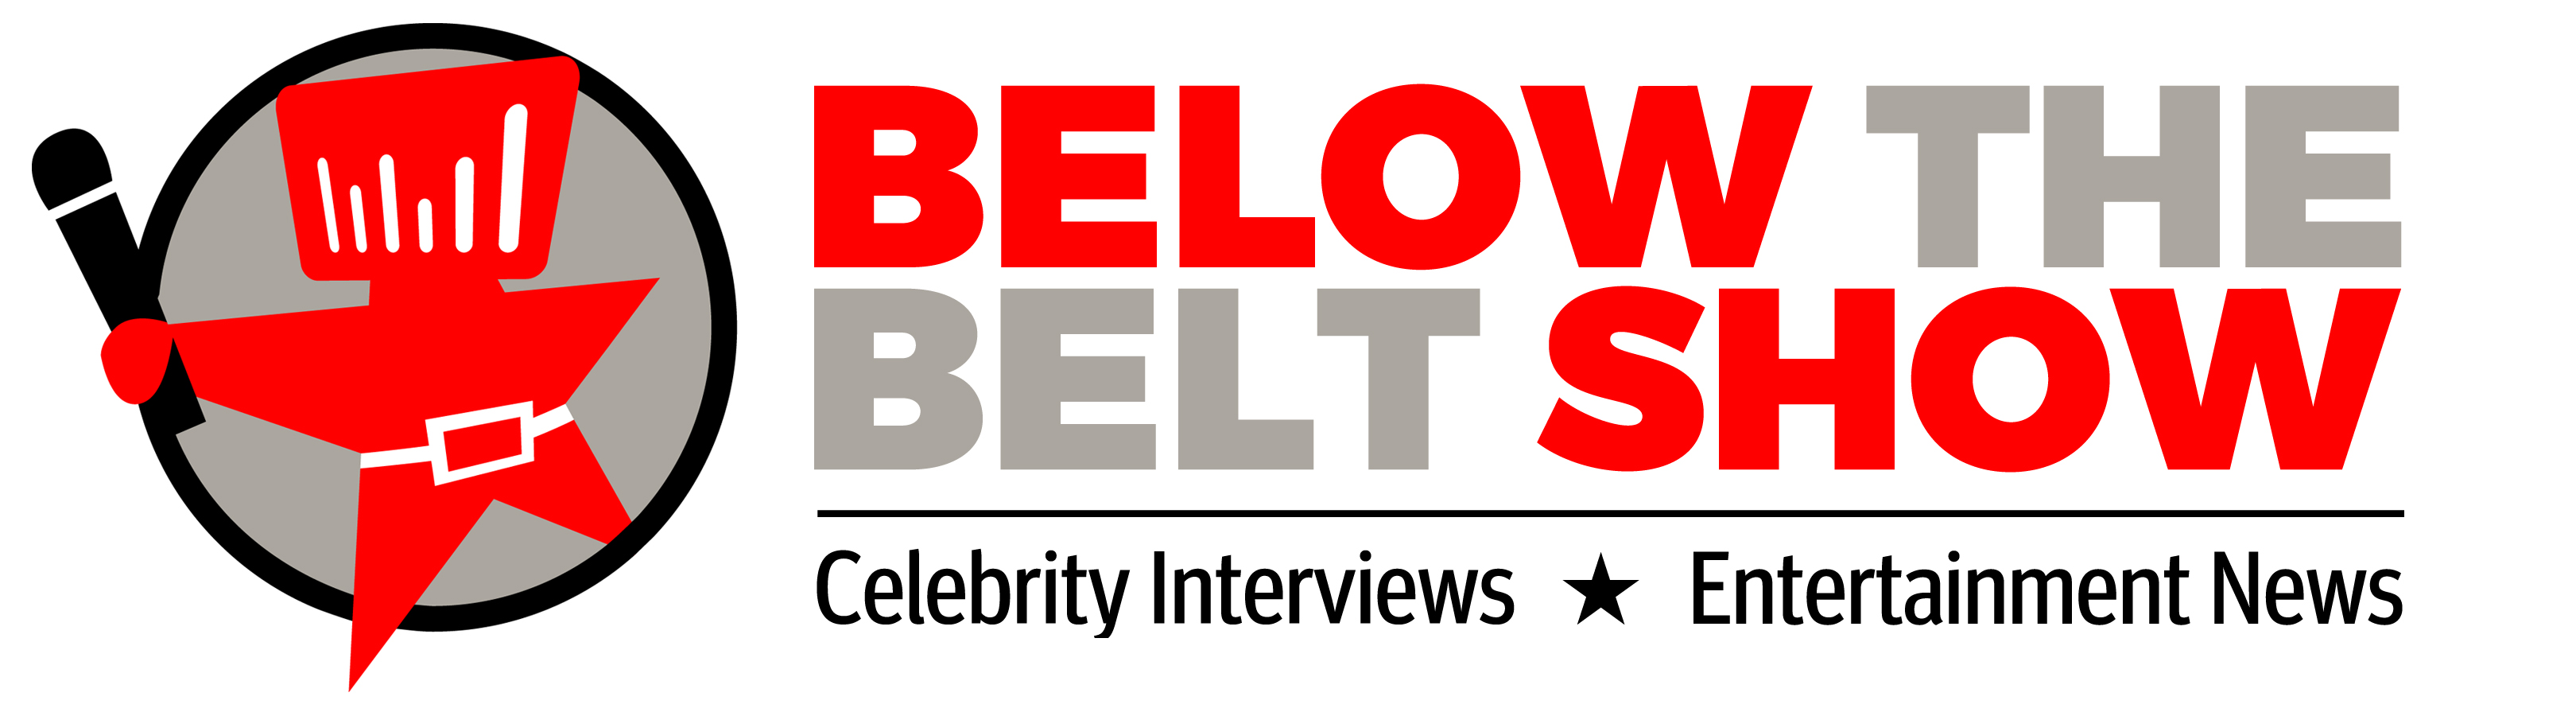 Celebrity Interviews ★ Entertainment News